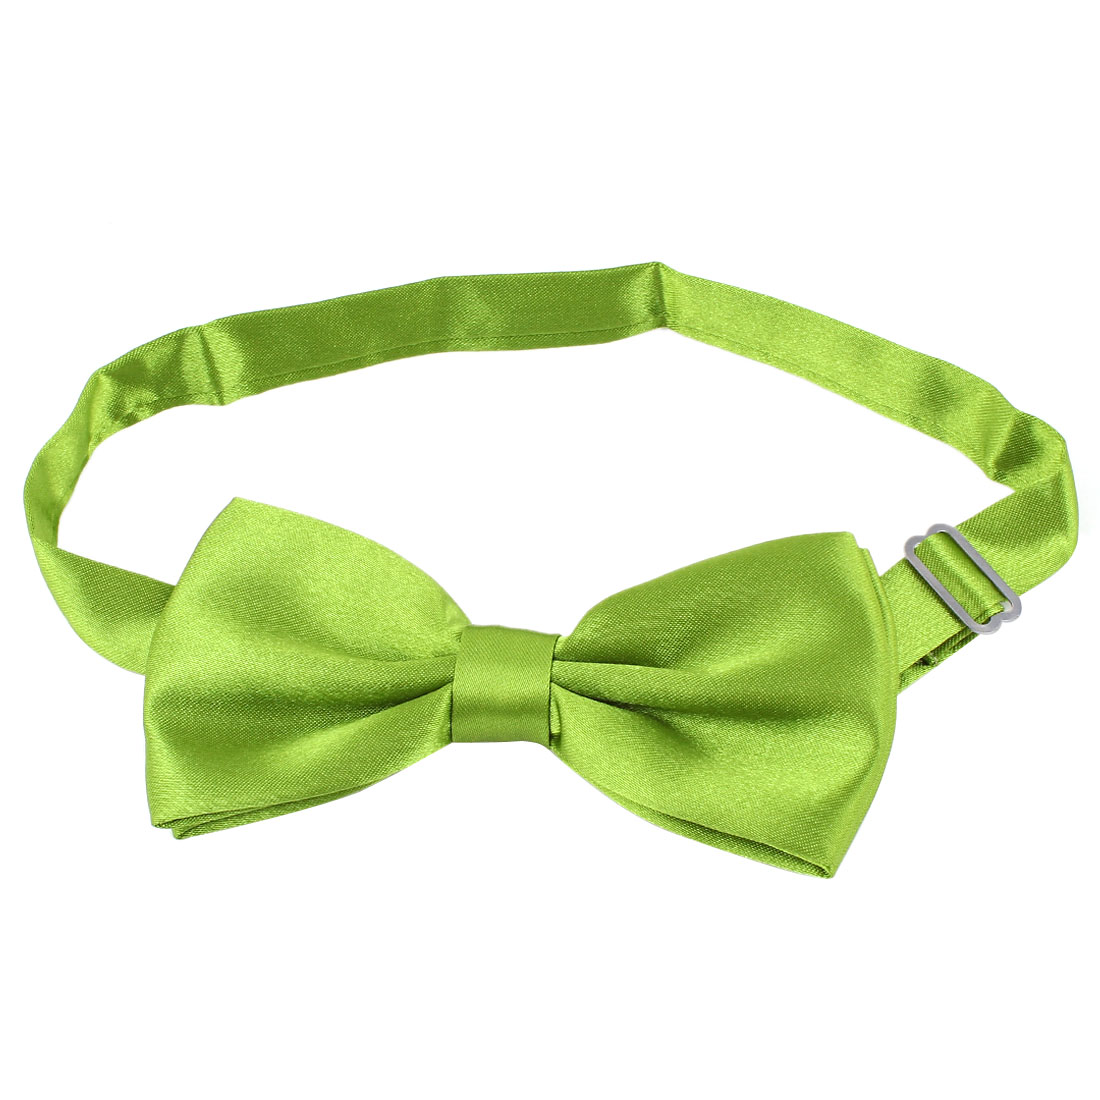 Metal Buckle Adjustable Strap Pet Dog Yorkie Puppy Collar Bowtie Necktie Olive Green